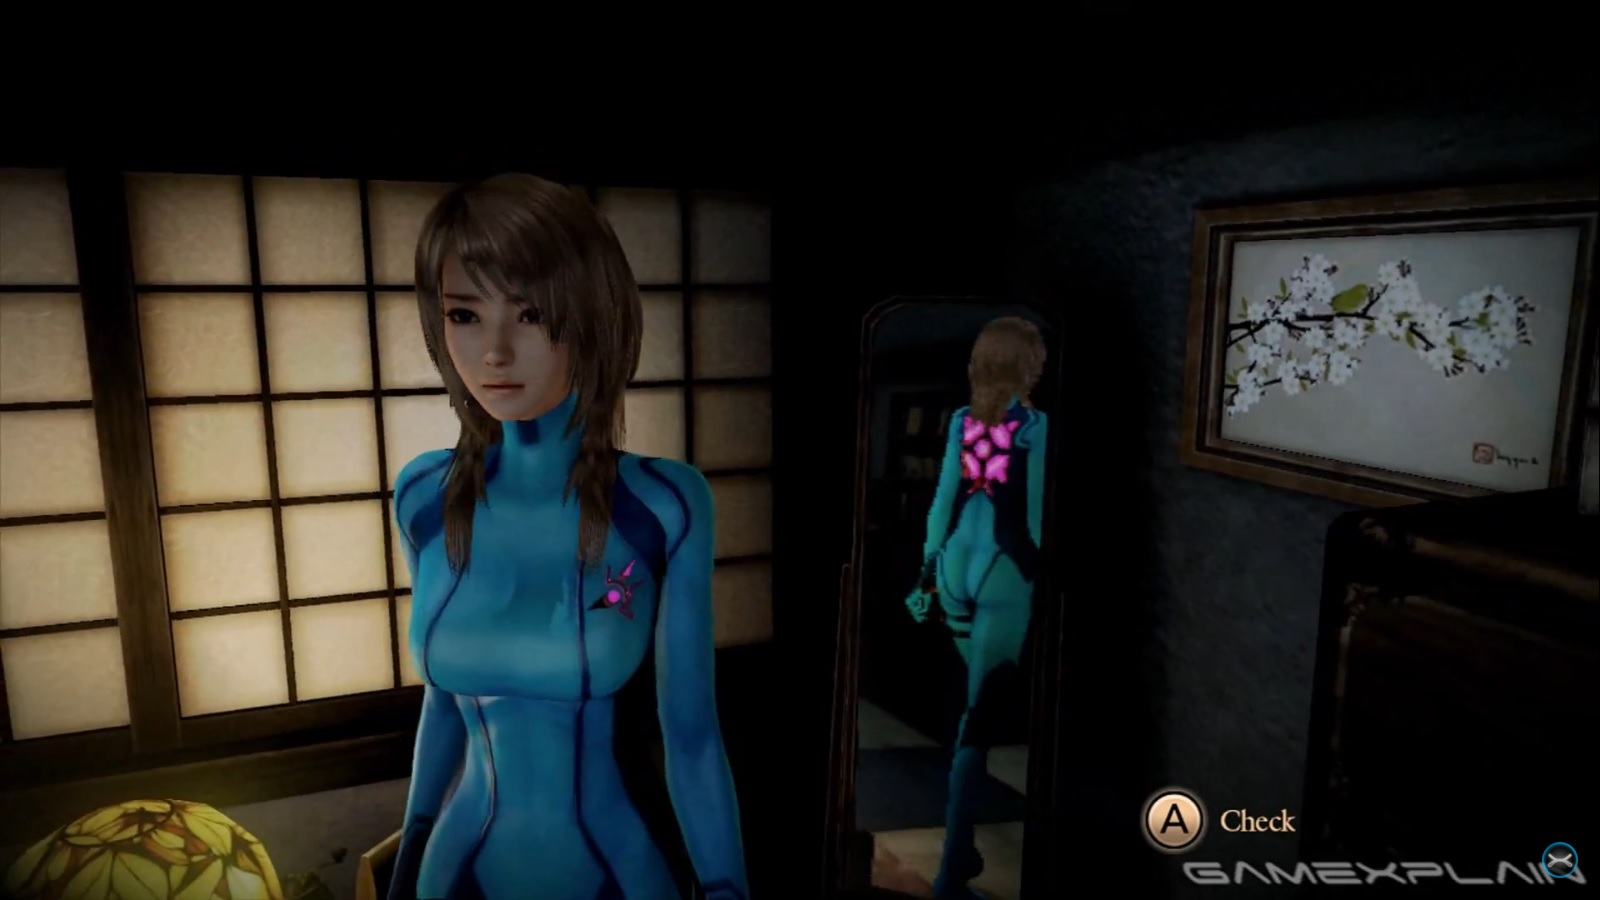 More Zero Suit Samus and Zelda costumes footage in Fatal Frame ...